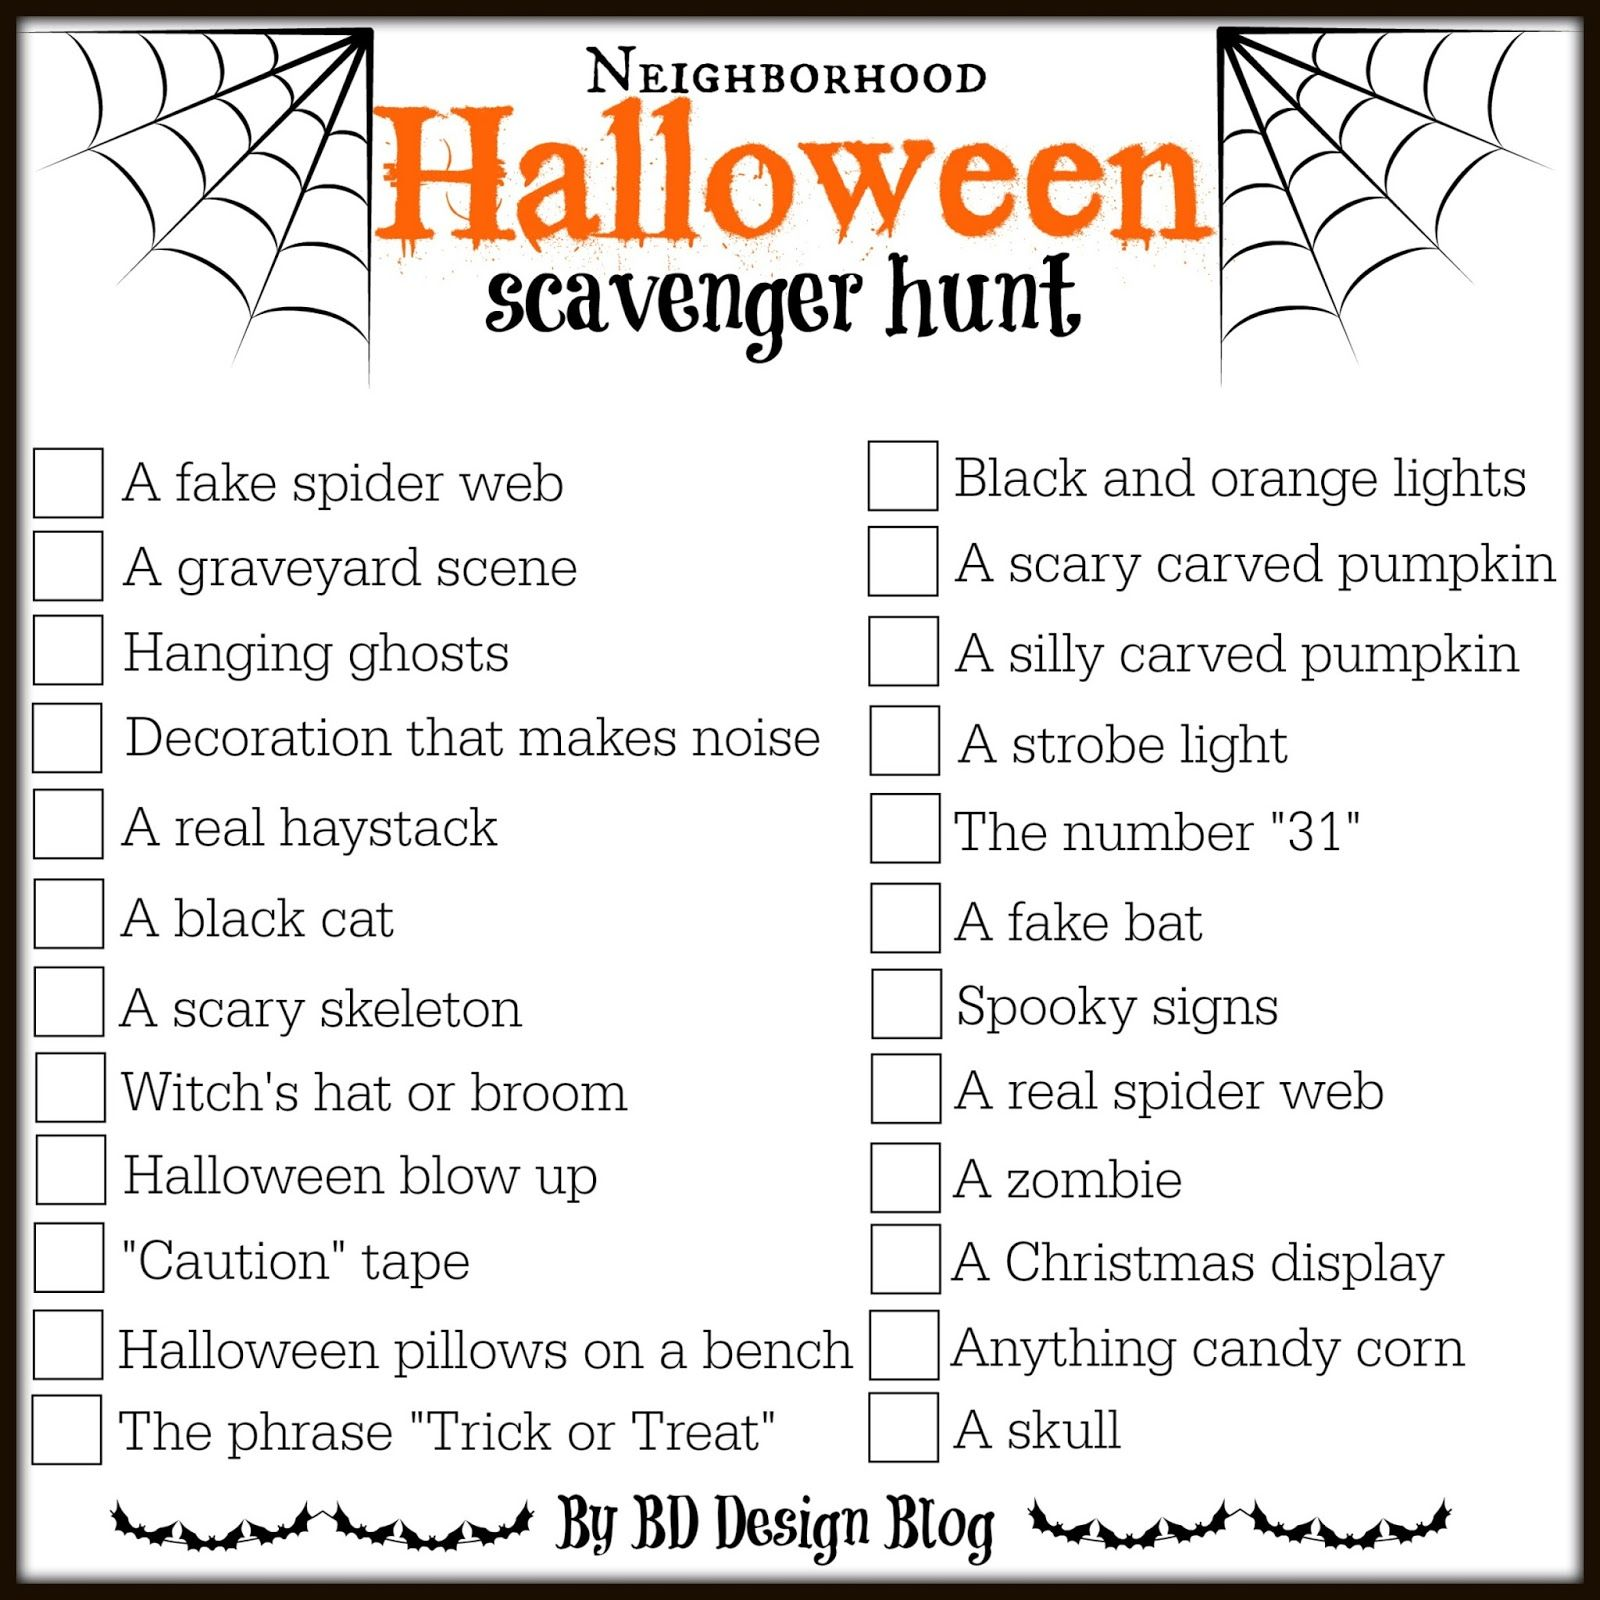 image about Free Printable Halloween Games for Adults called Regional Halloween Scavenger Hunt Halloween